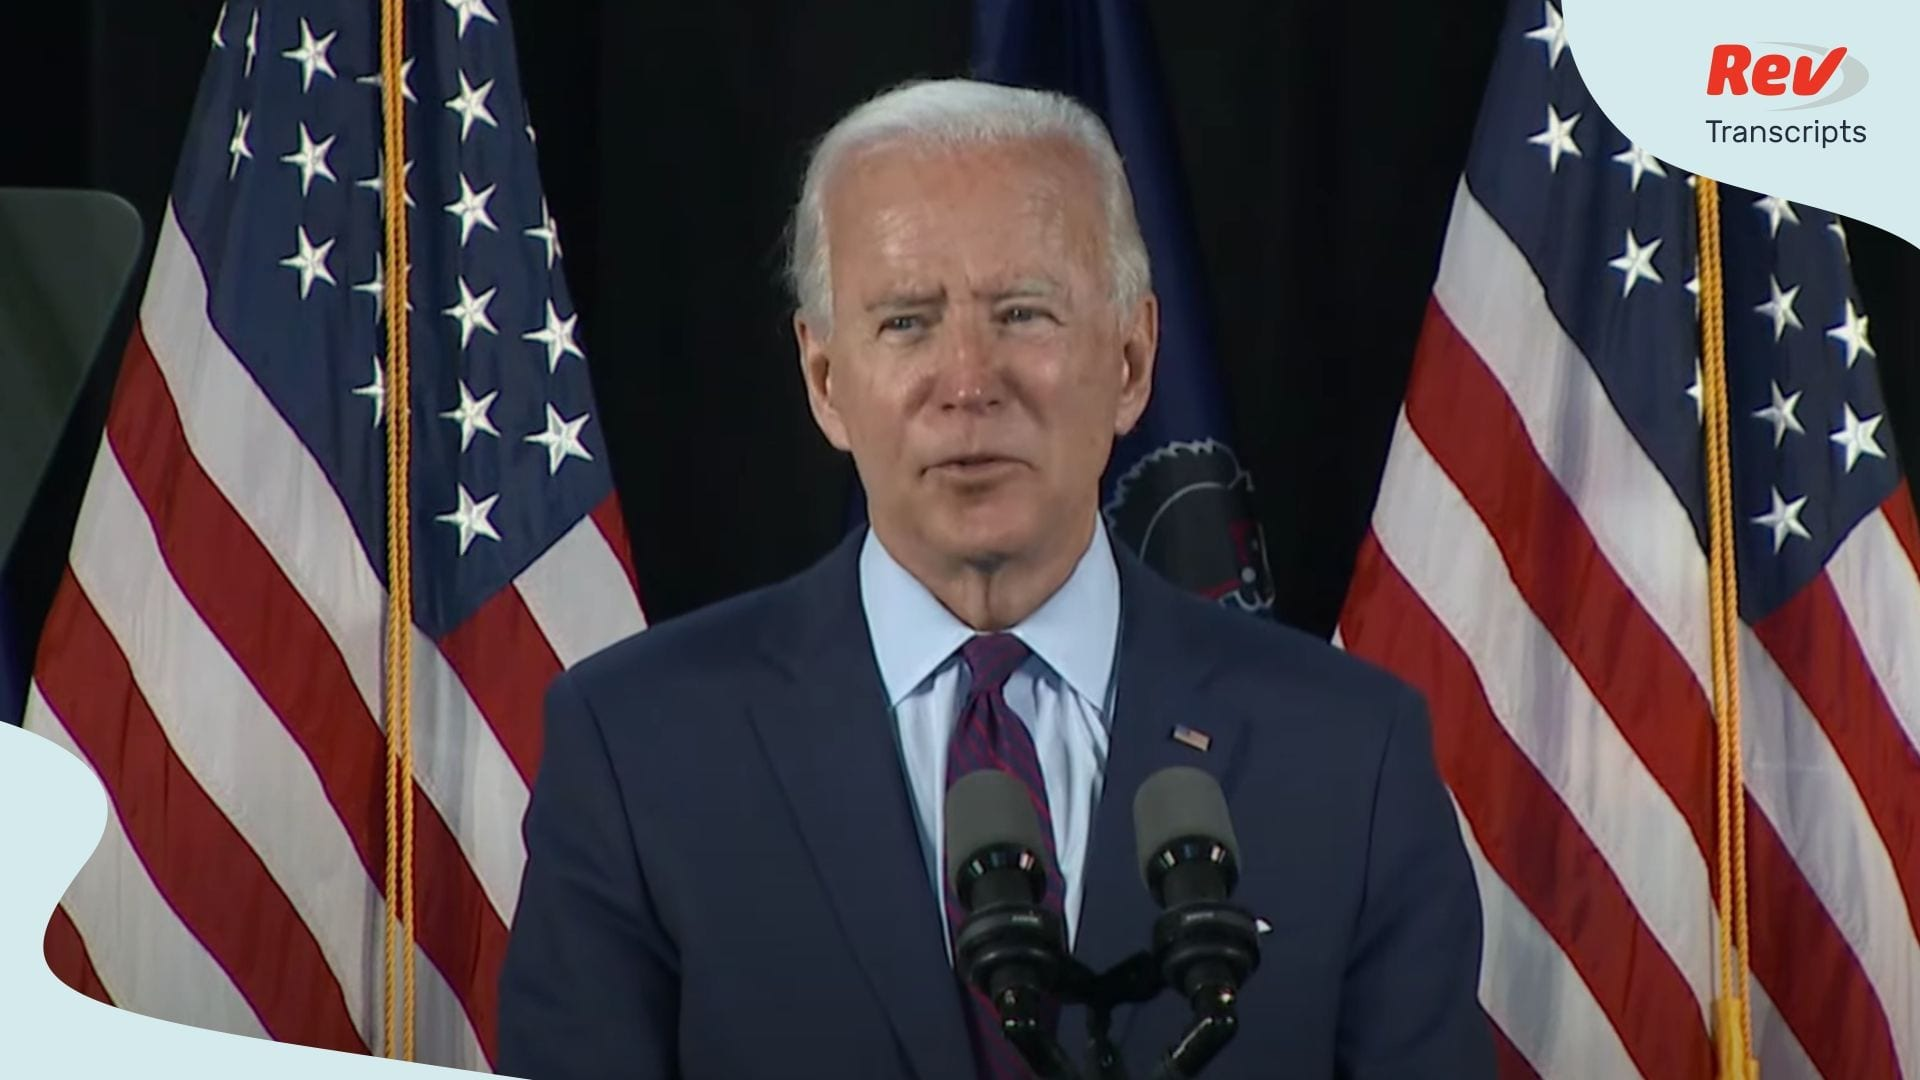 Joe Biden Speech on Health Care, Affordable Care Act